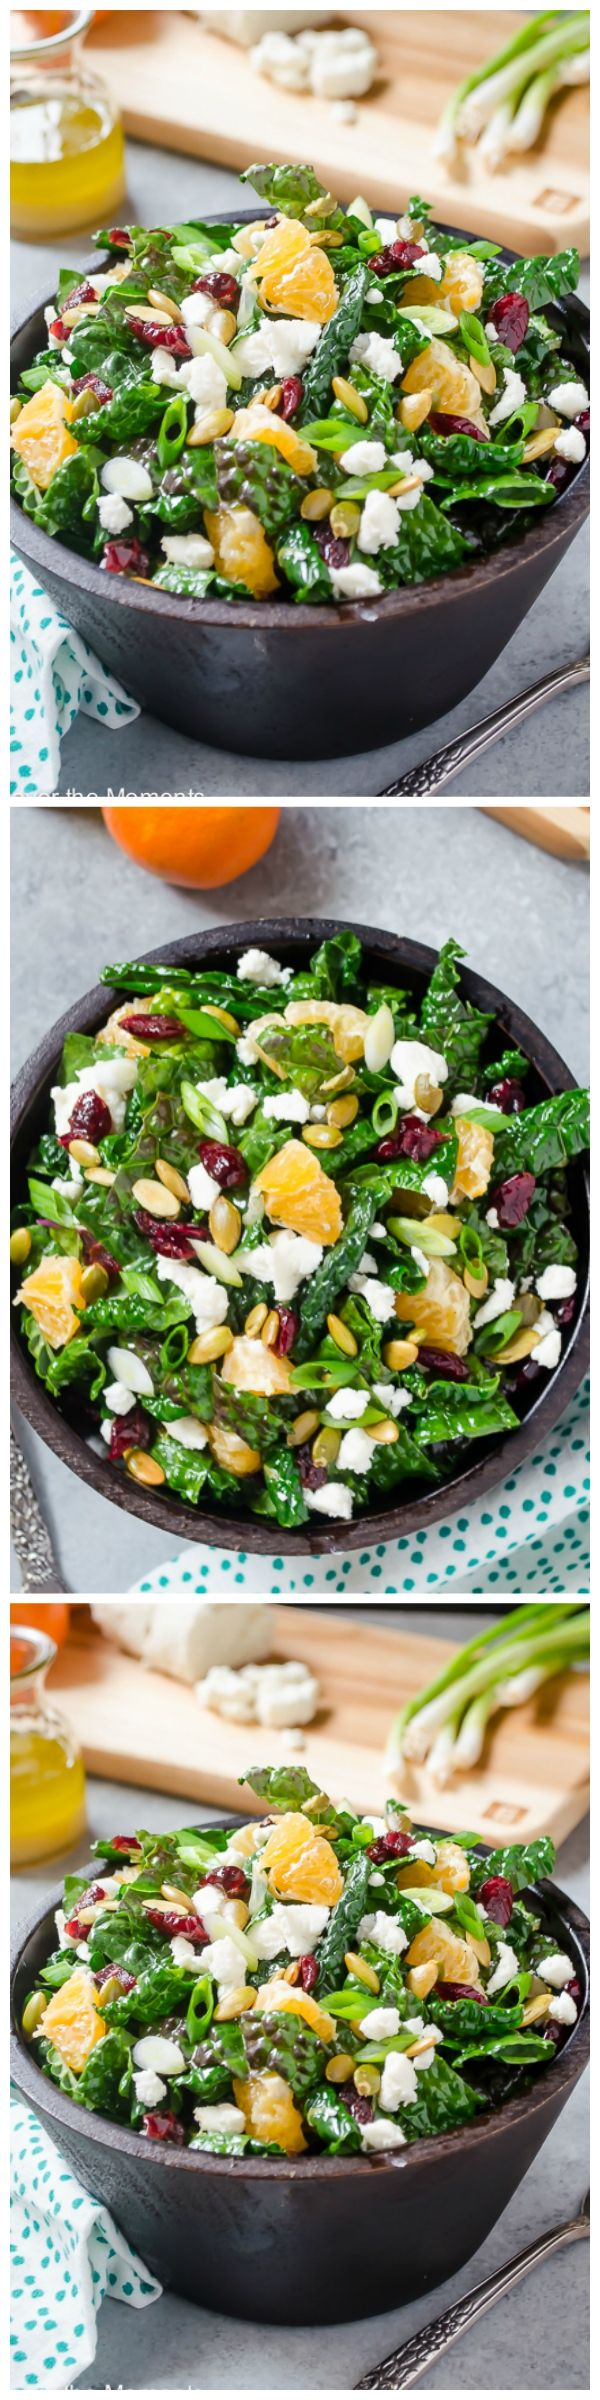 Kale Salad with Goat Cheese, Cranberries, and Orange - Kale Salad with Goat Cheese, Cranberries, and Orange is proof that salad doesn't have to be boring! {GF, Vegetarian}